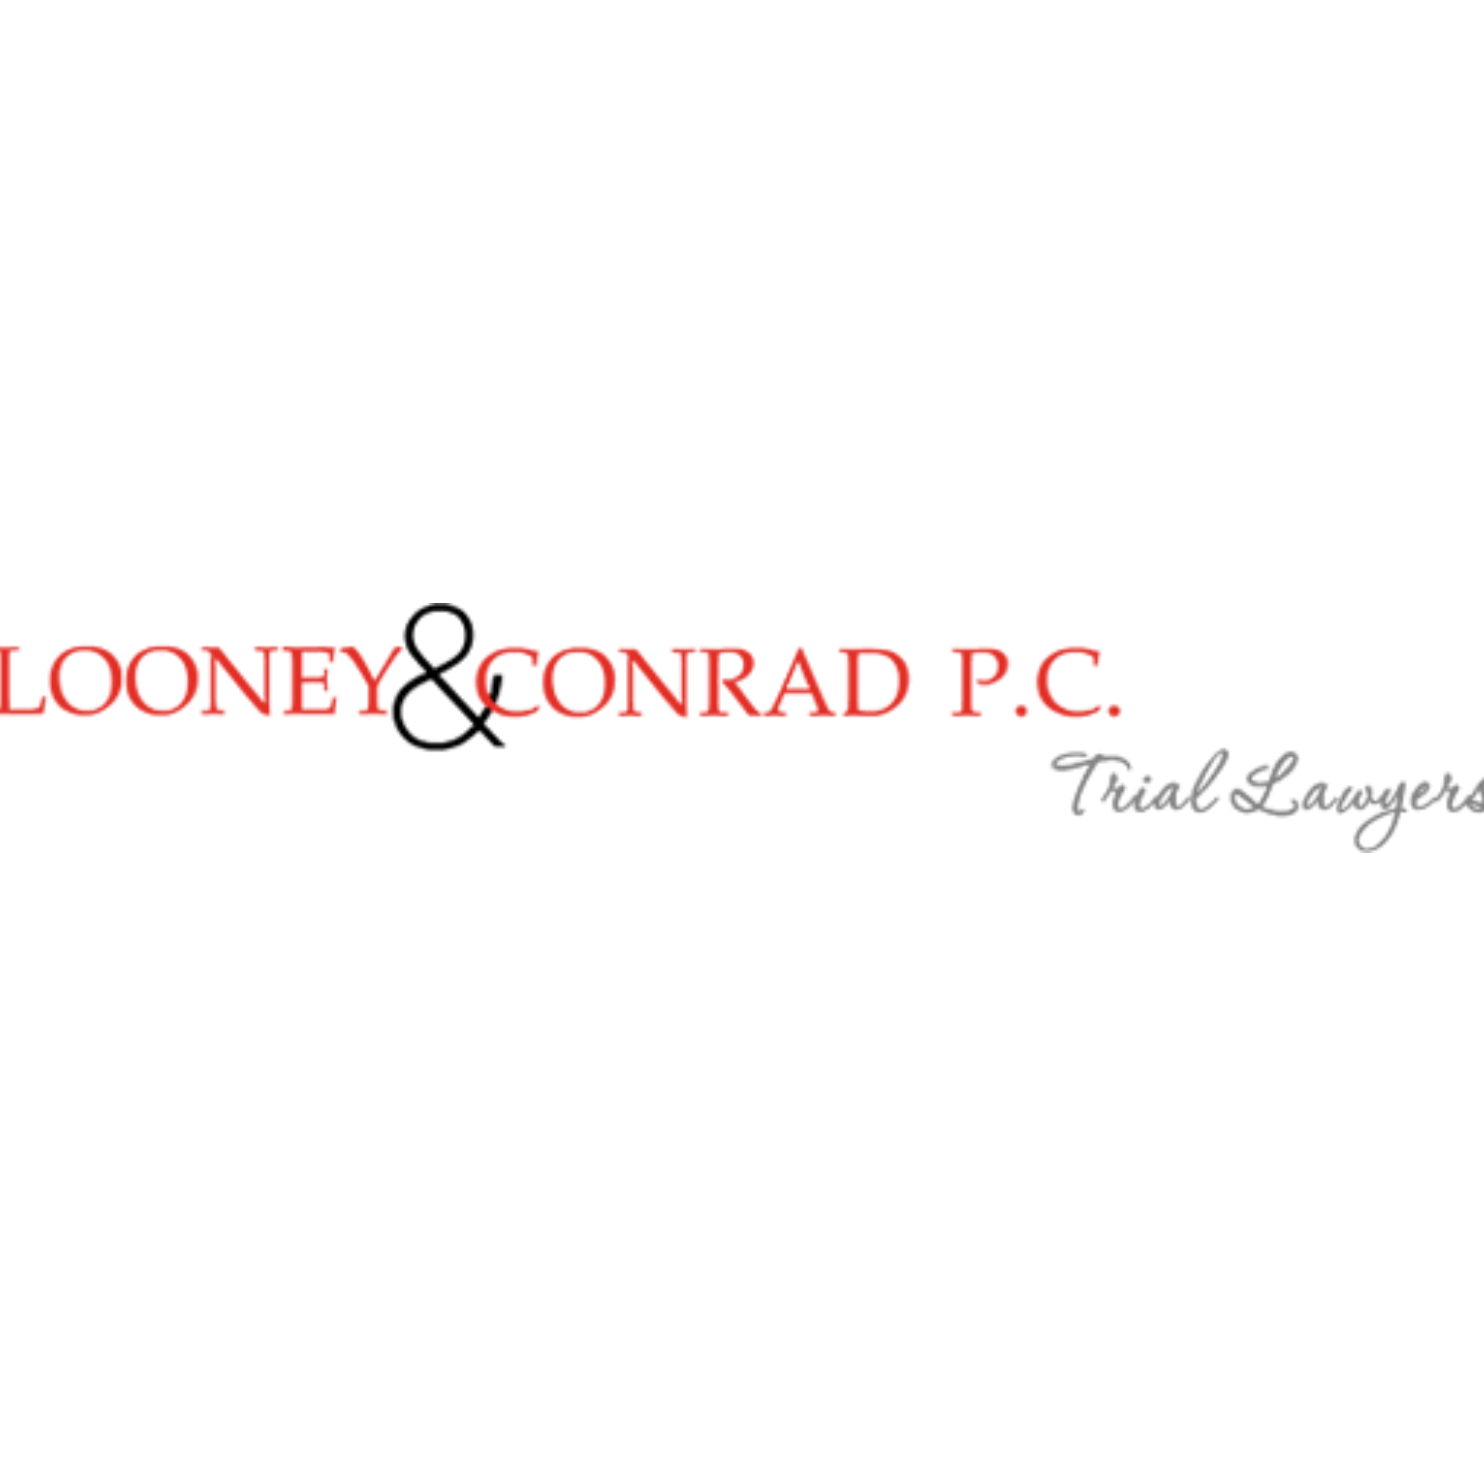 Looney & Conrad, P.C.